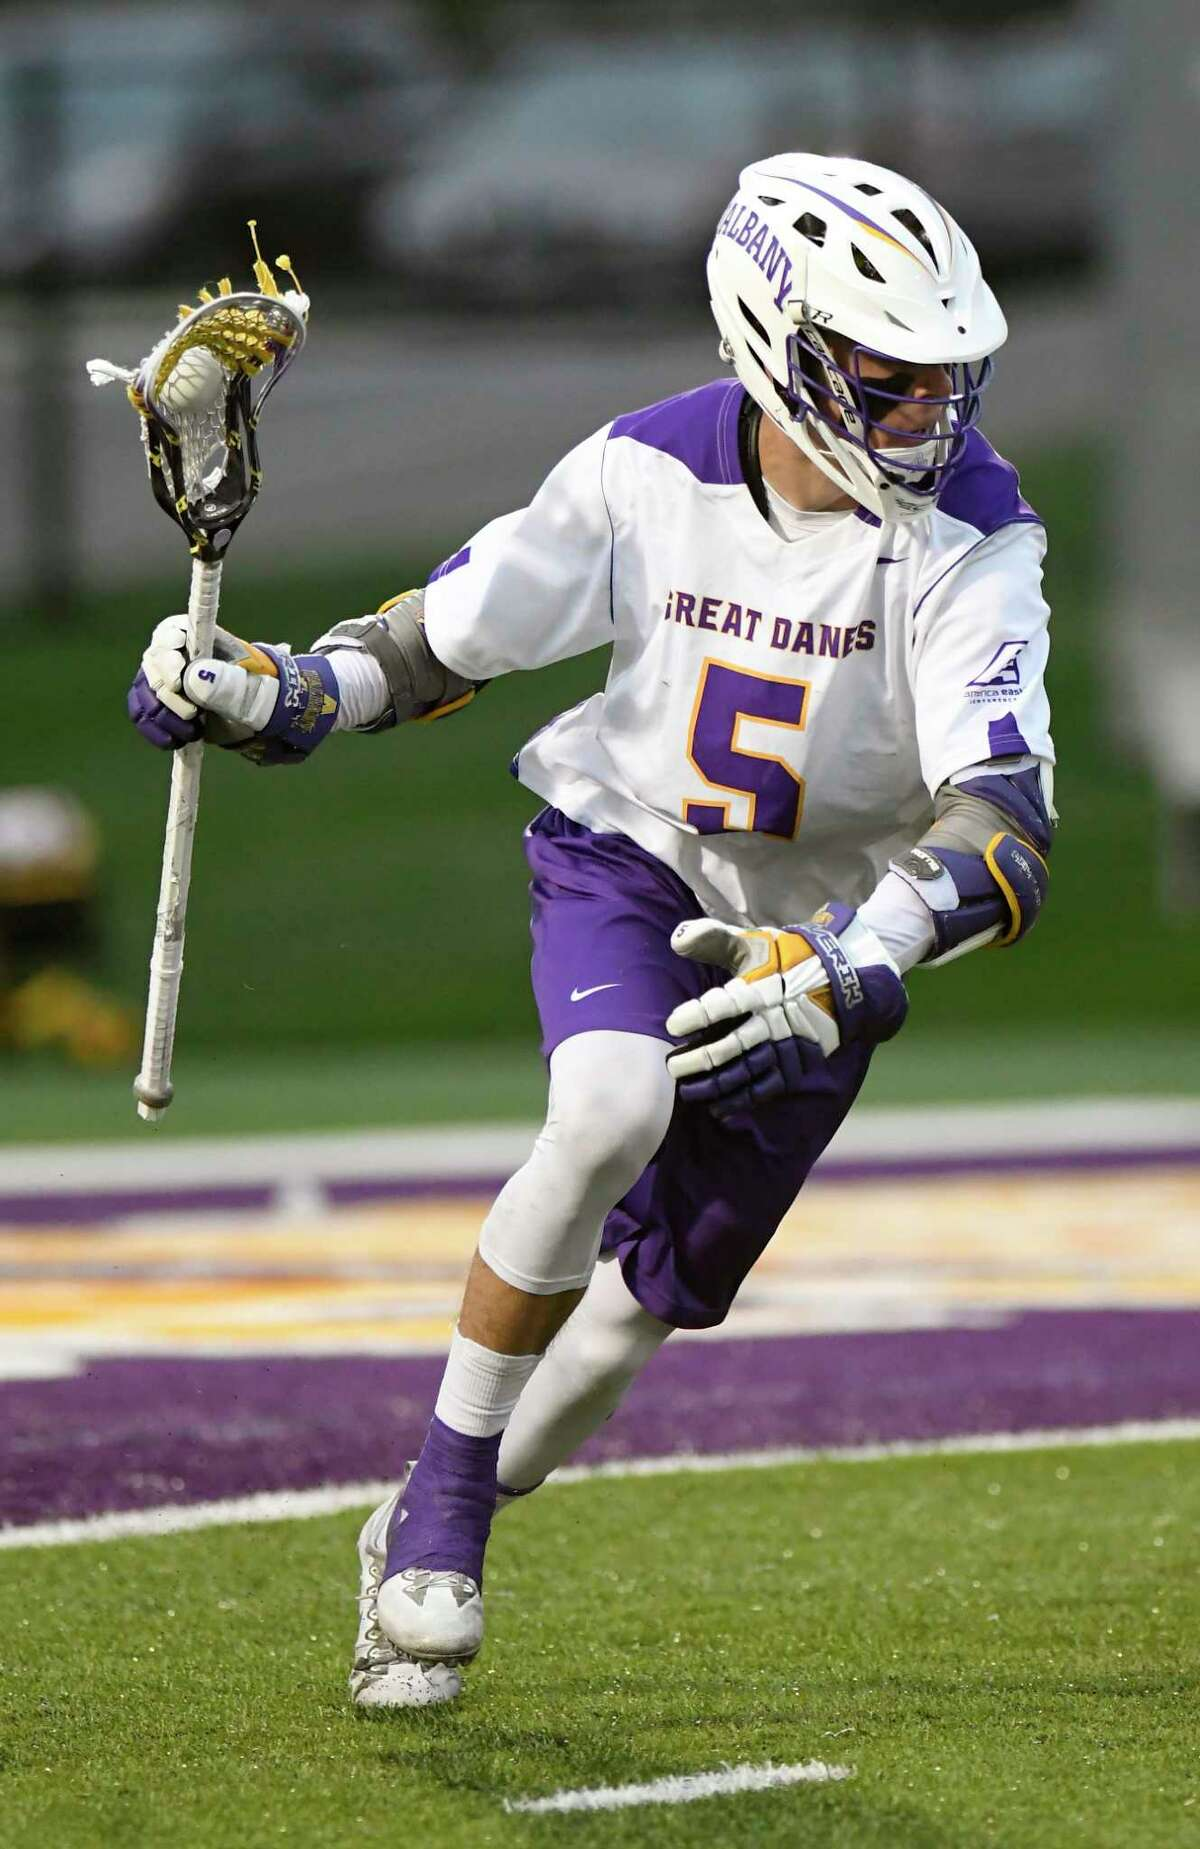 UAlbany's Connor Fields (5) moves the ball against Hartford during a NCAA Division I college men's lacrosse game on Saturday, April 29, 2017, in Albany, N.Y. (Hans Pennink / Special to the Times Union) ORG XMIT: HP114